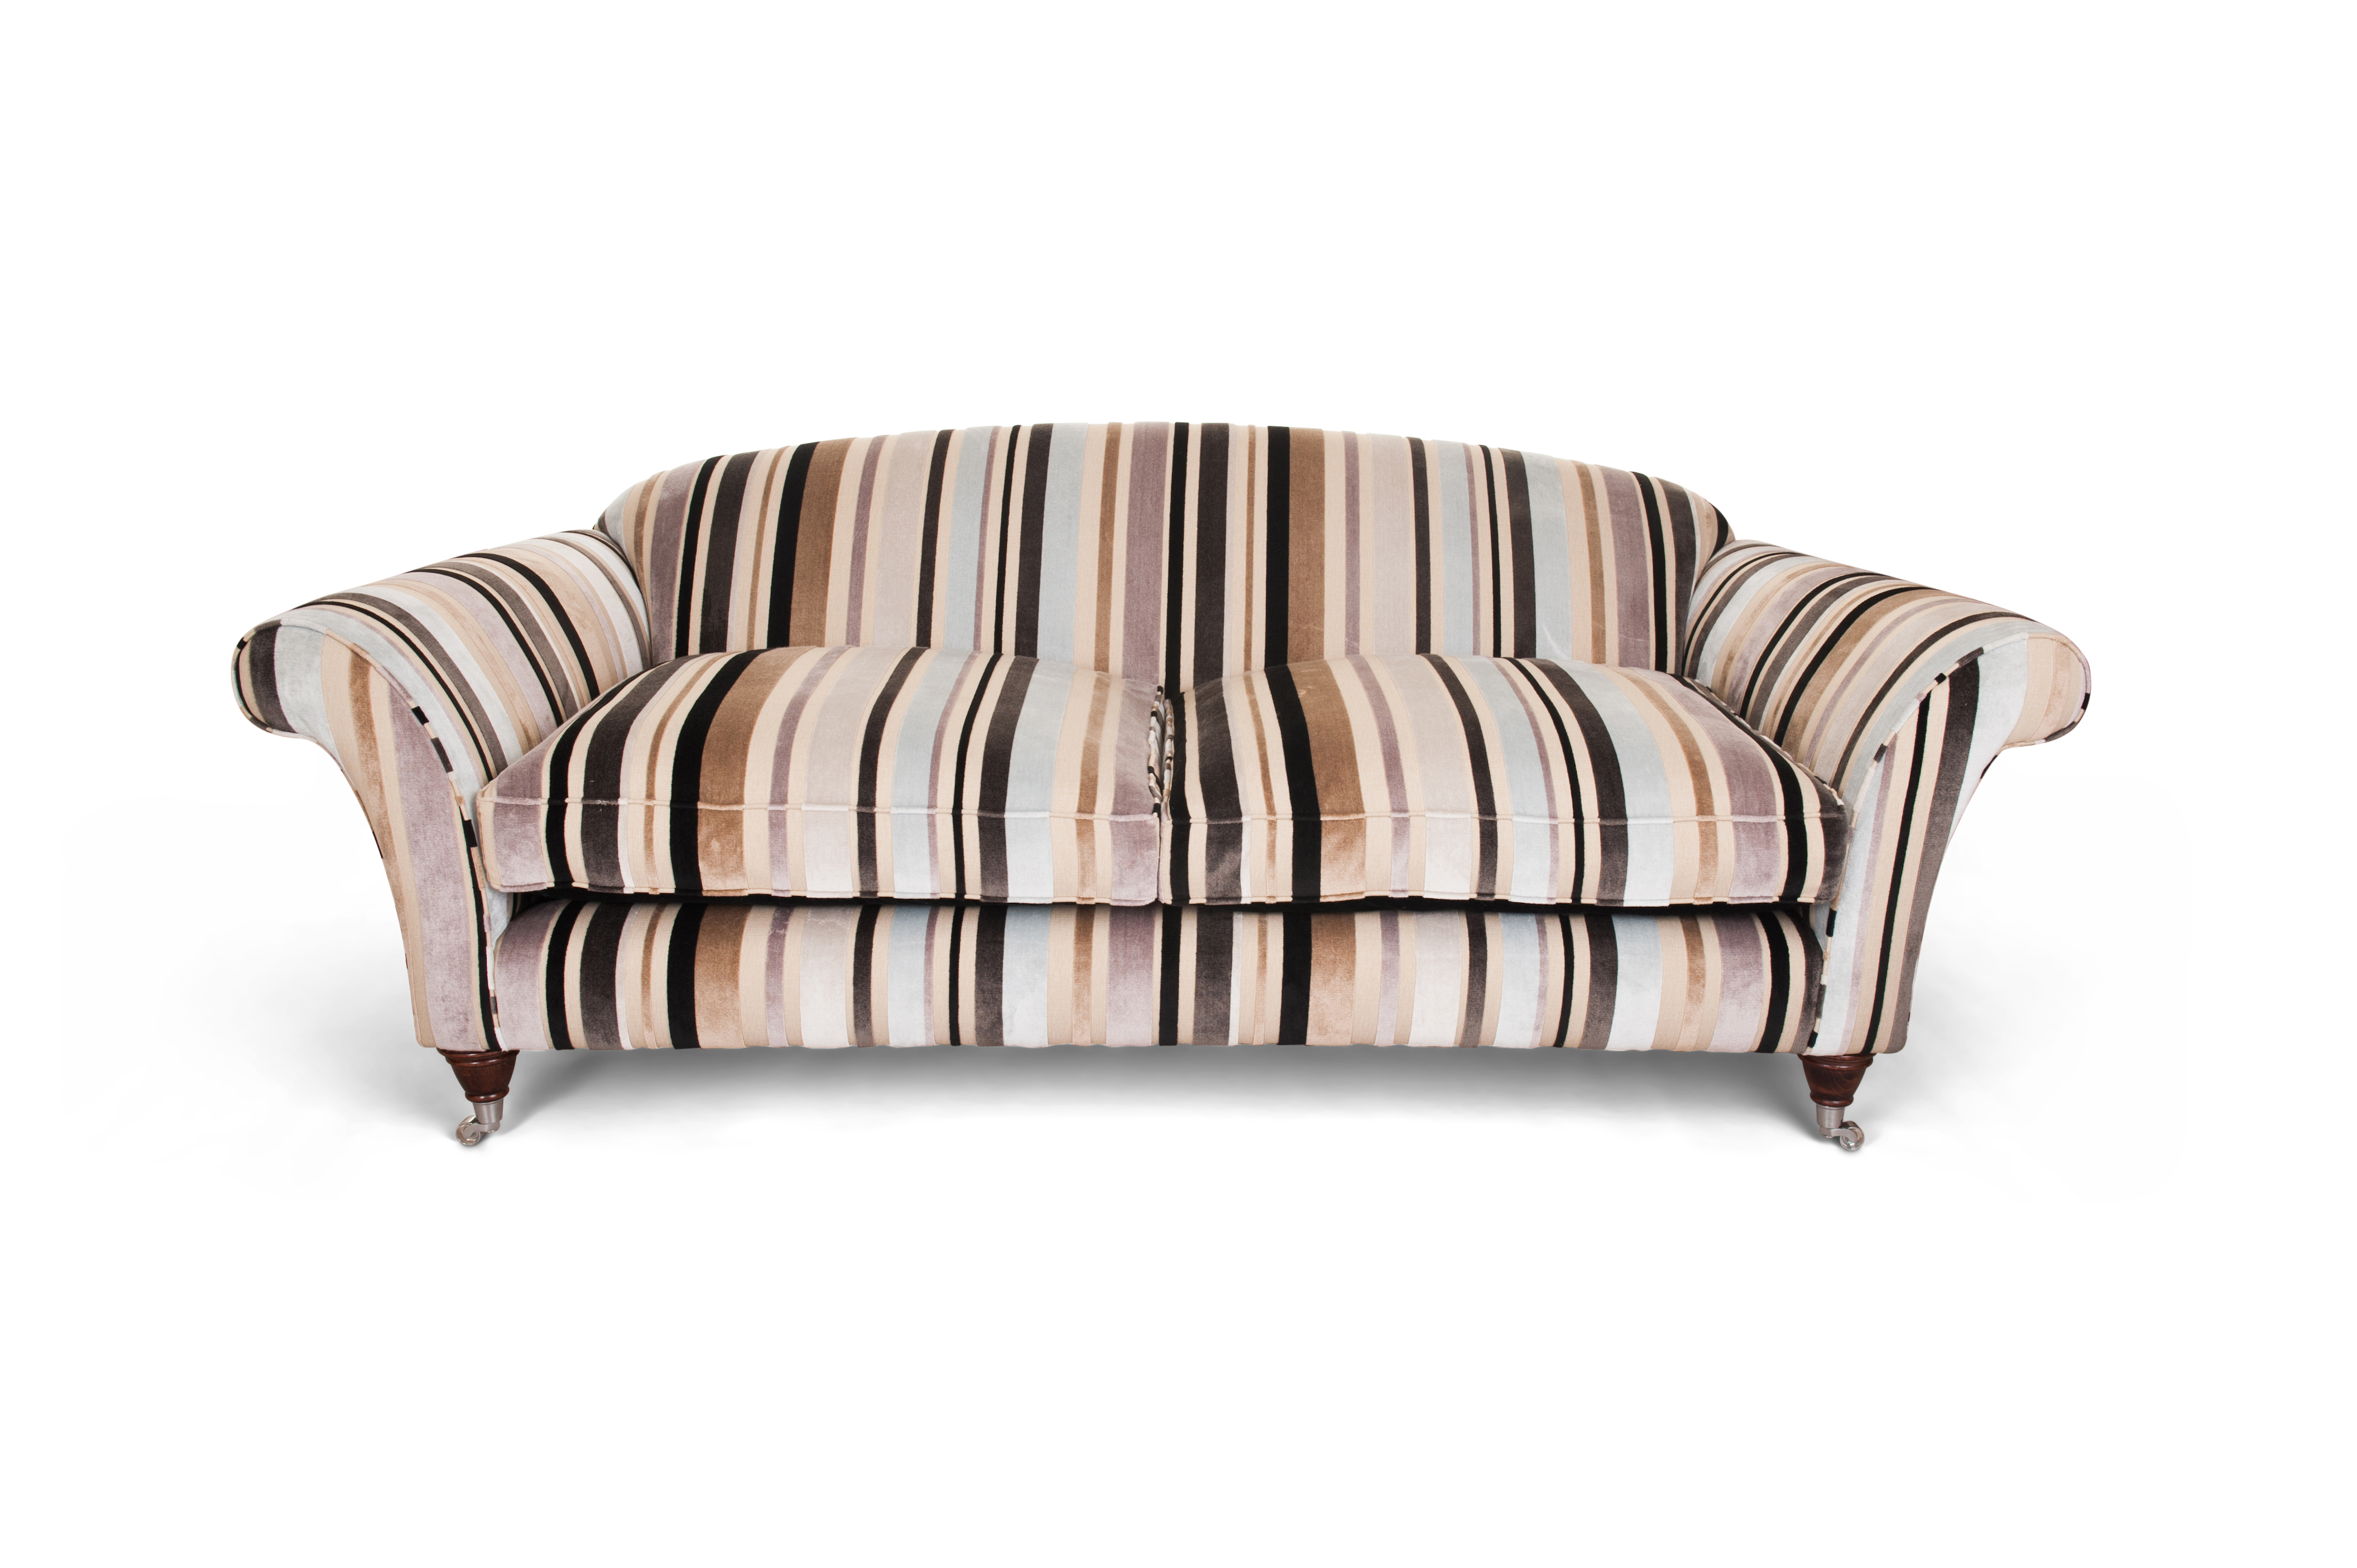 Auden sofa and chairs